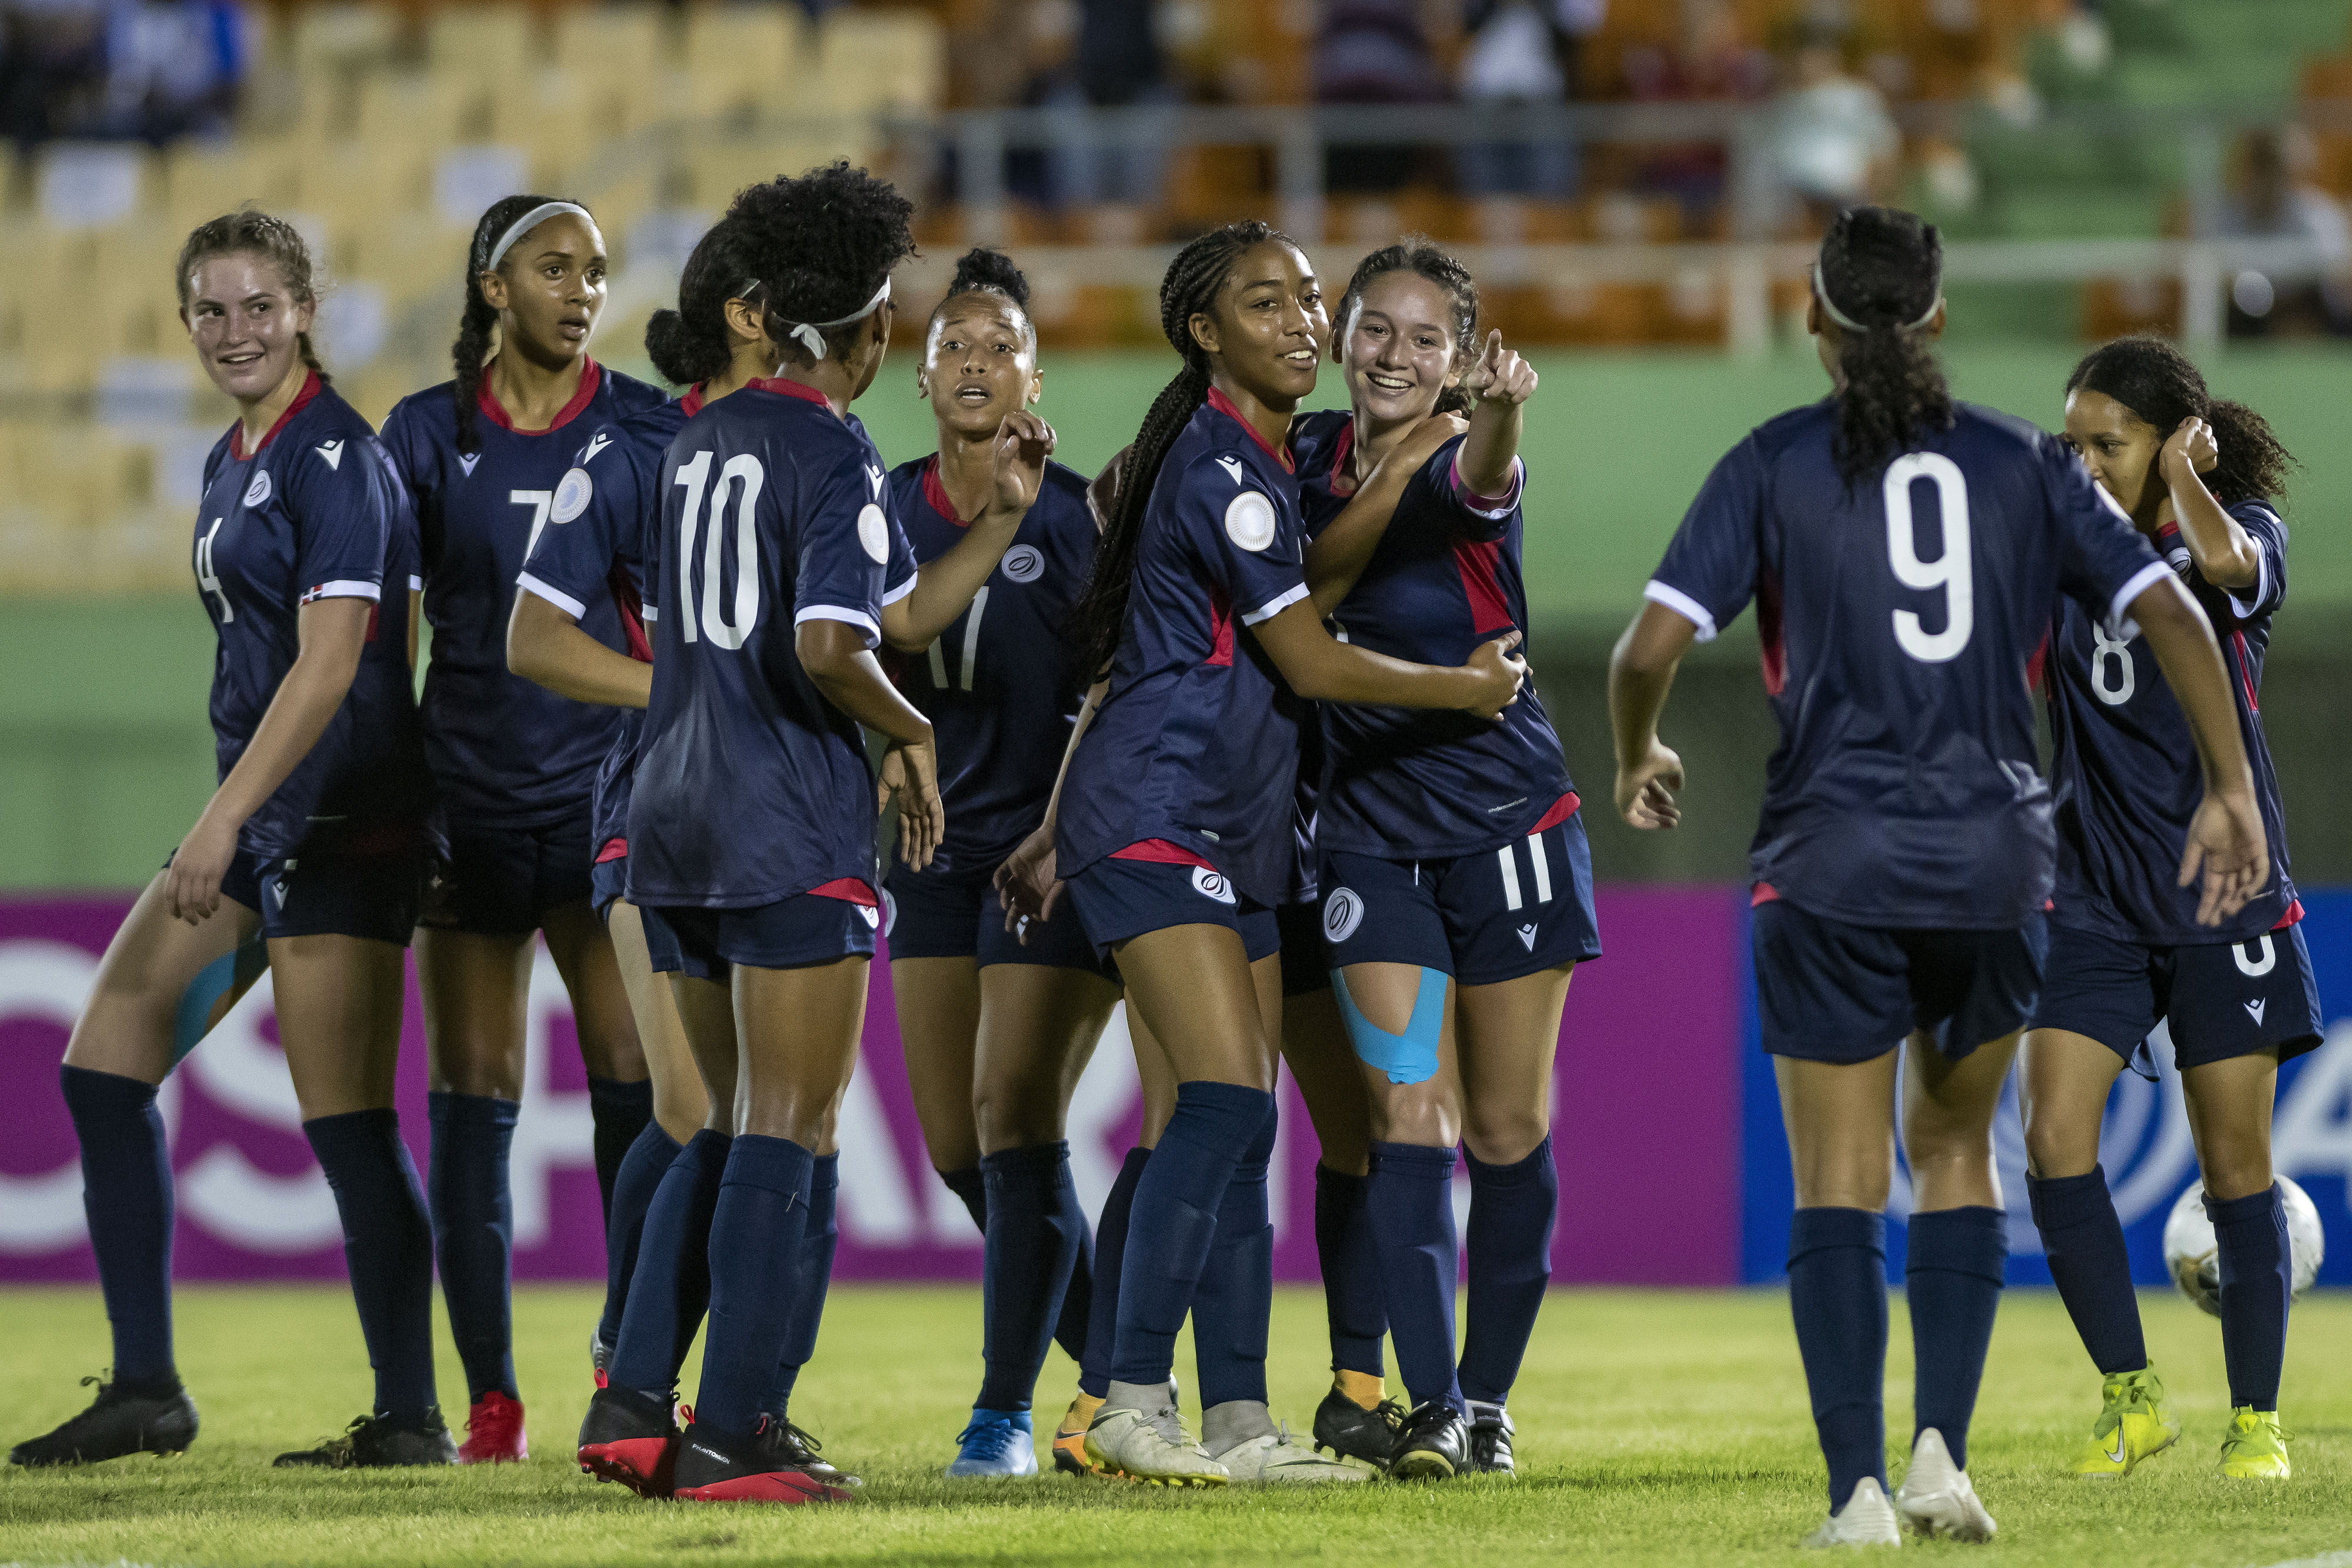 Dominican Republic credit team unity in opening win